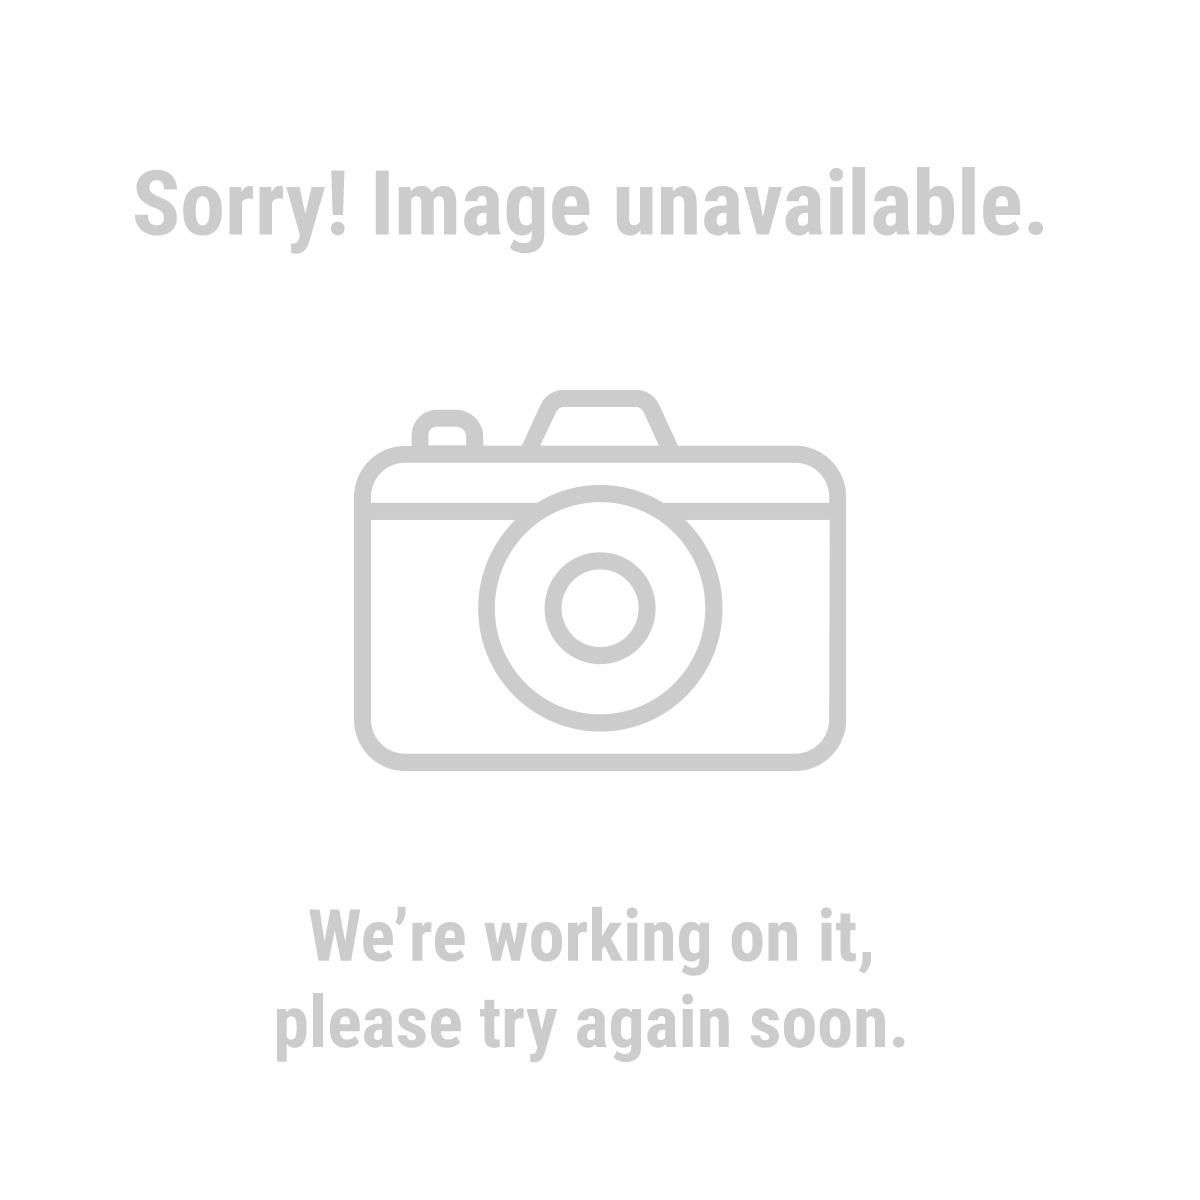 Central Pneumatic 95923 Professional 6-Color Airbrush Kit with Holder